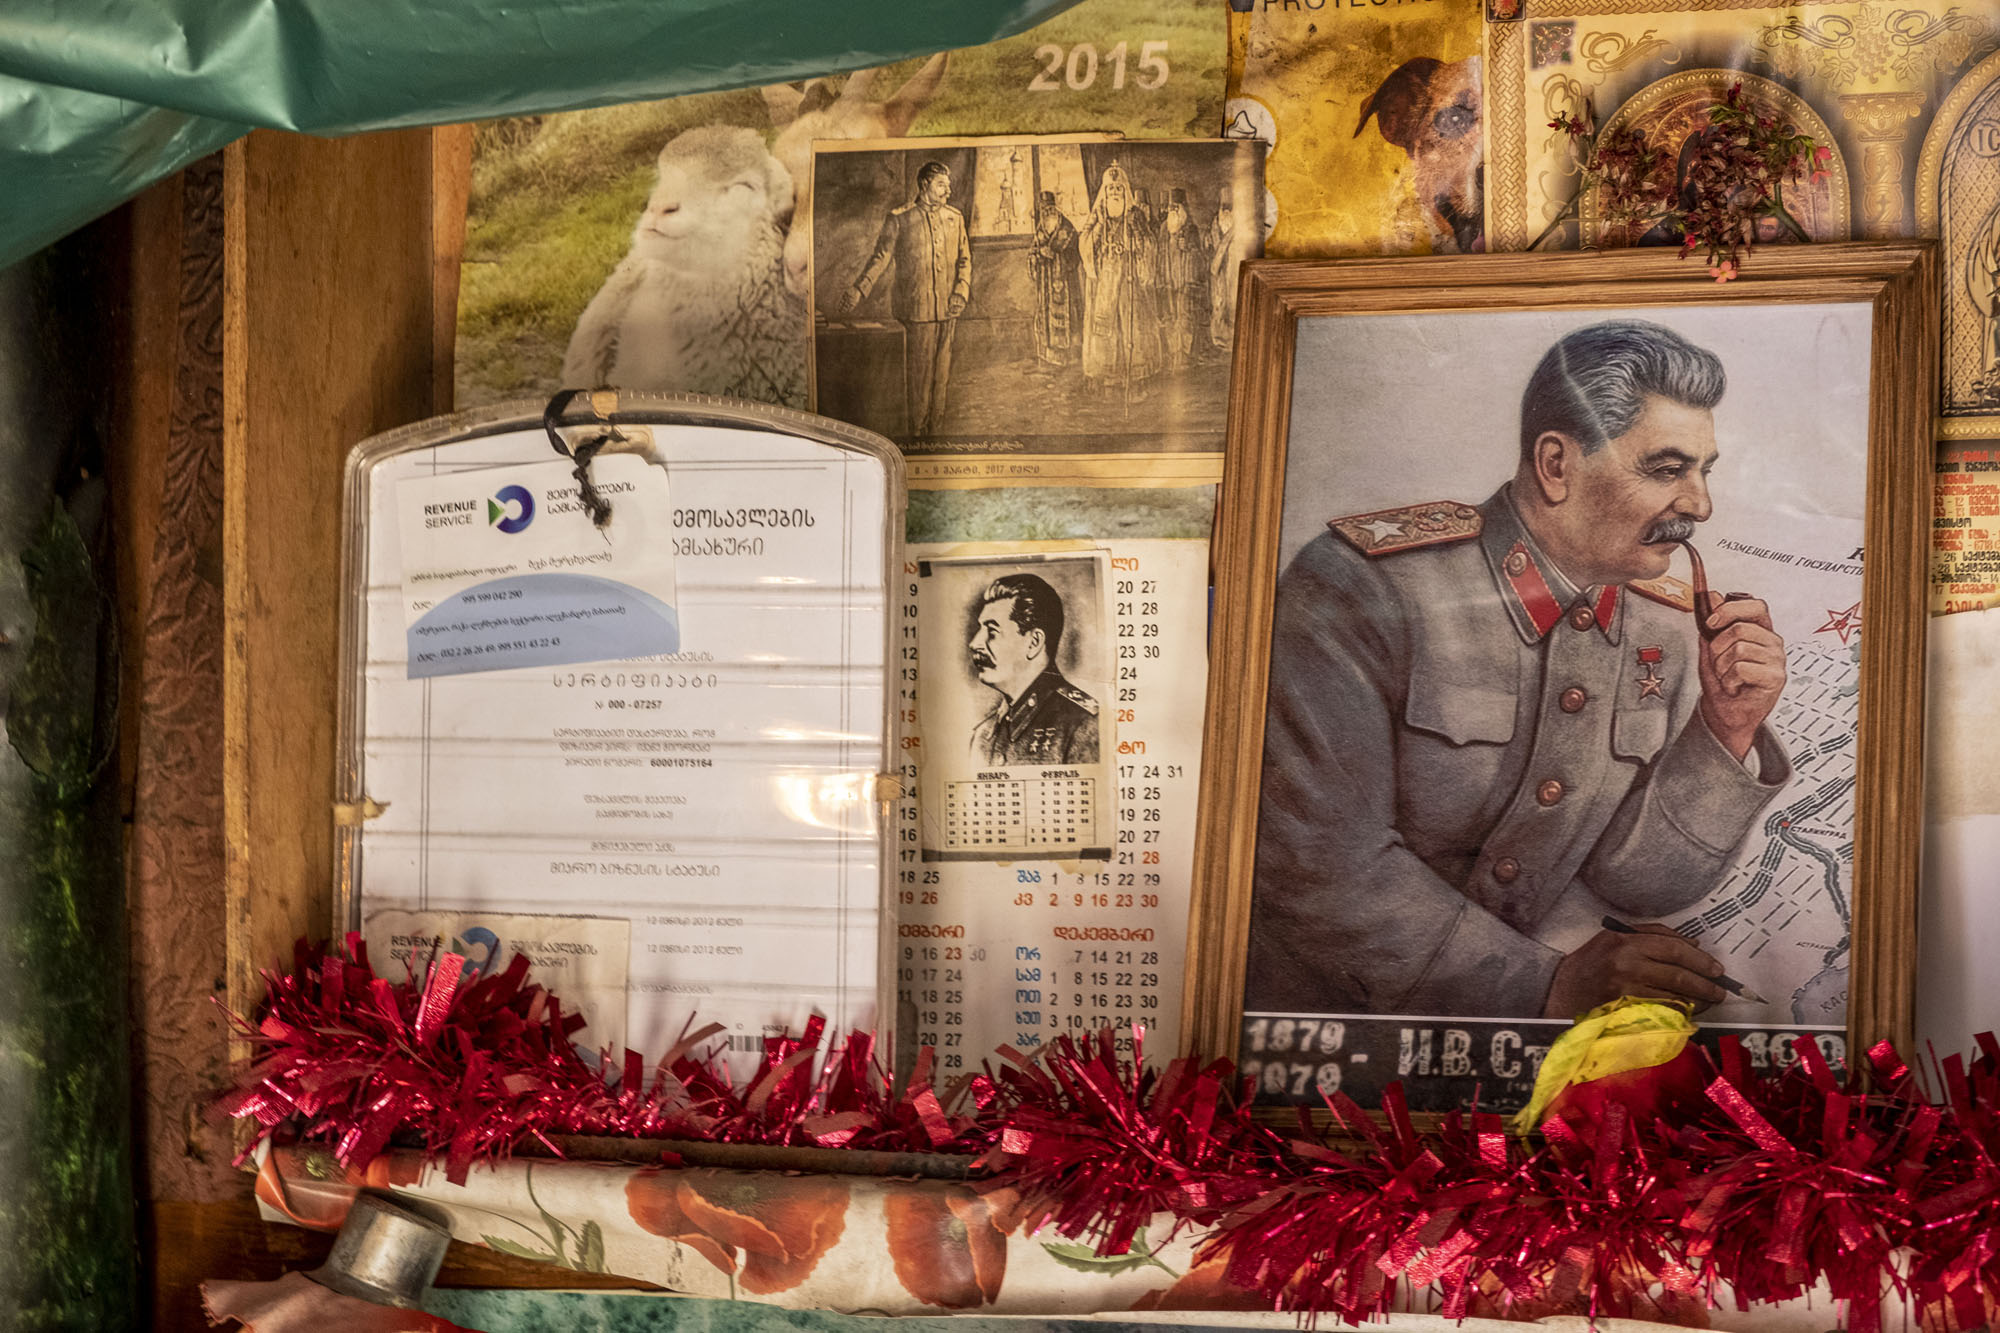 stalin room detail 2.jpg